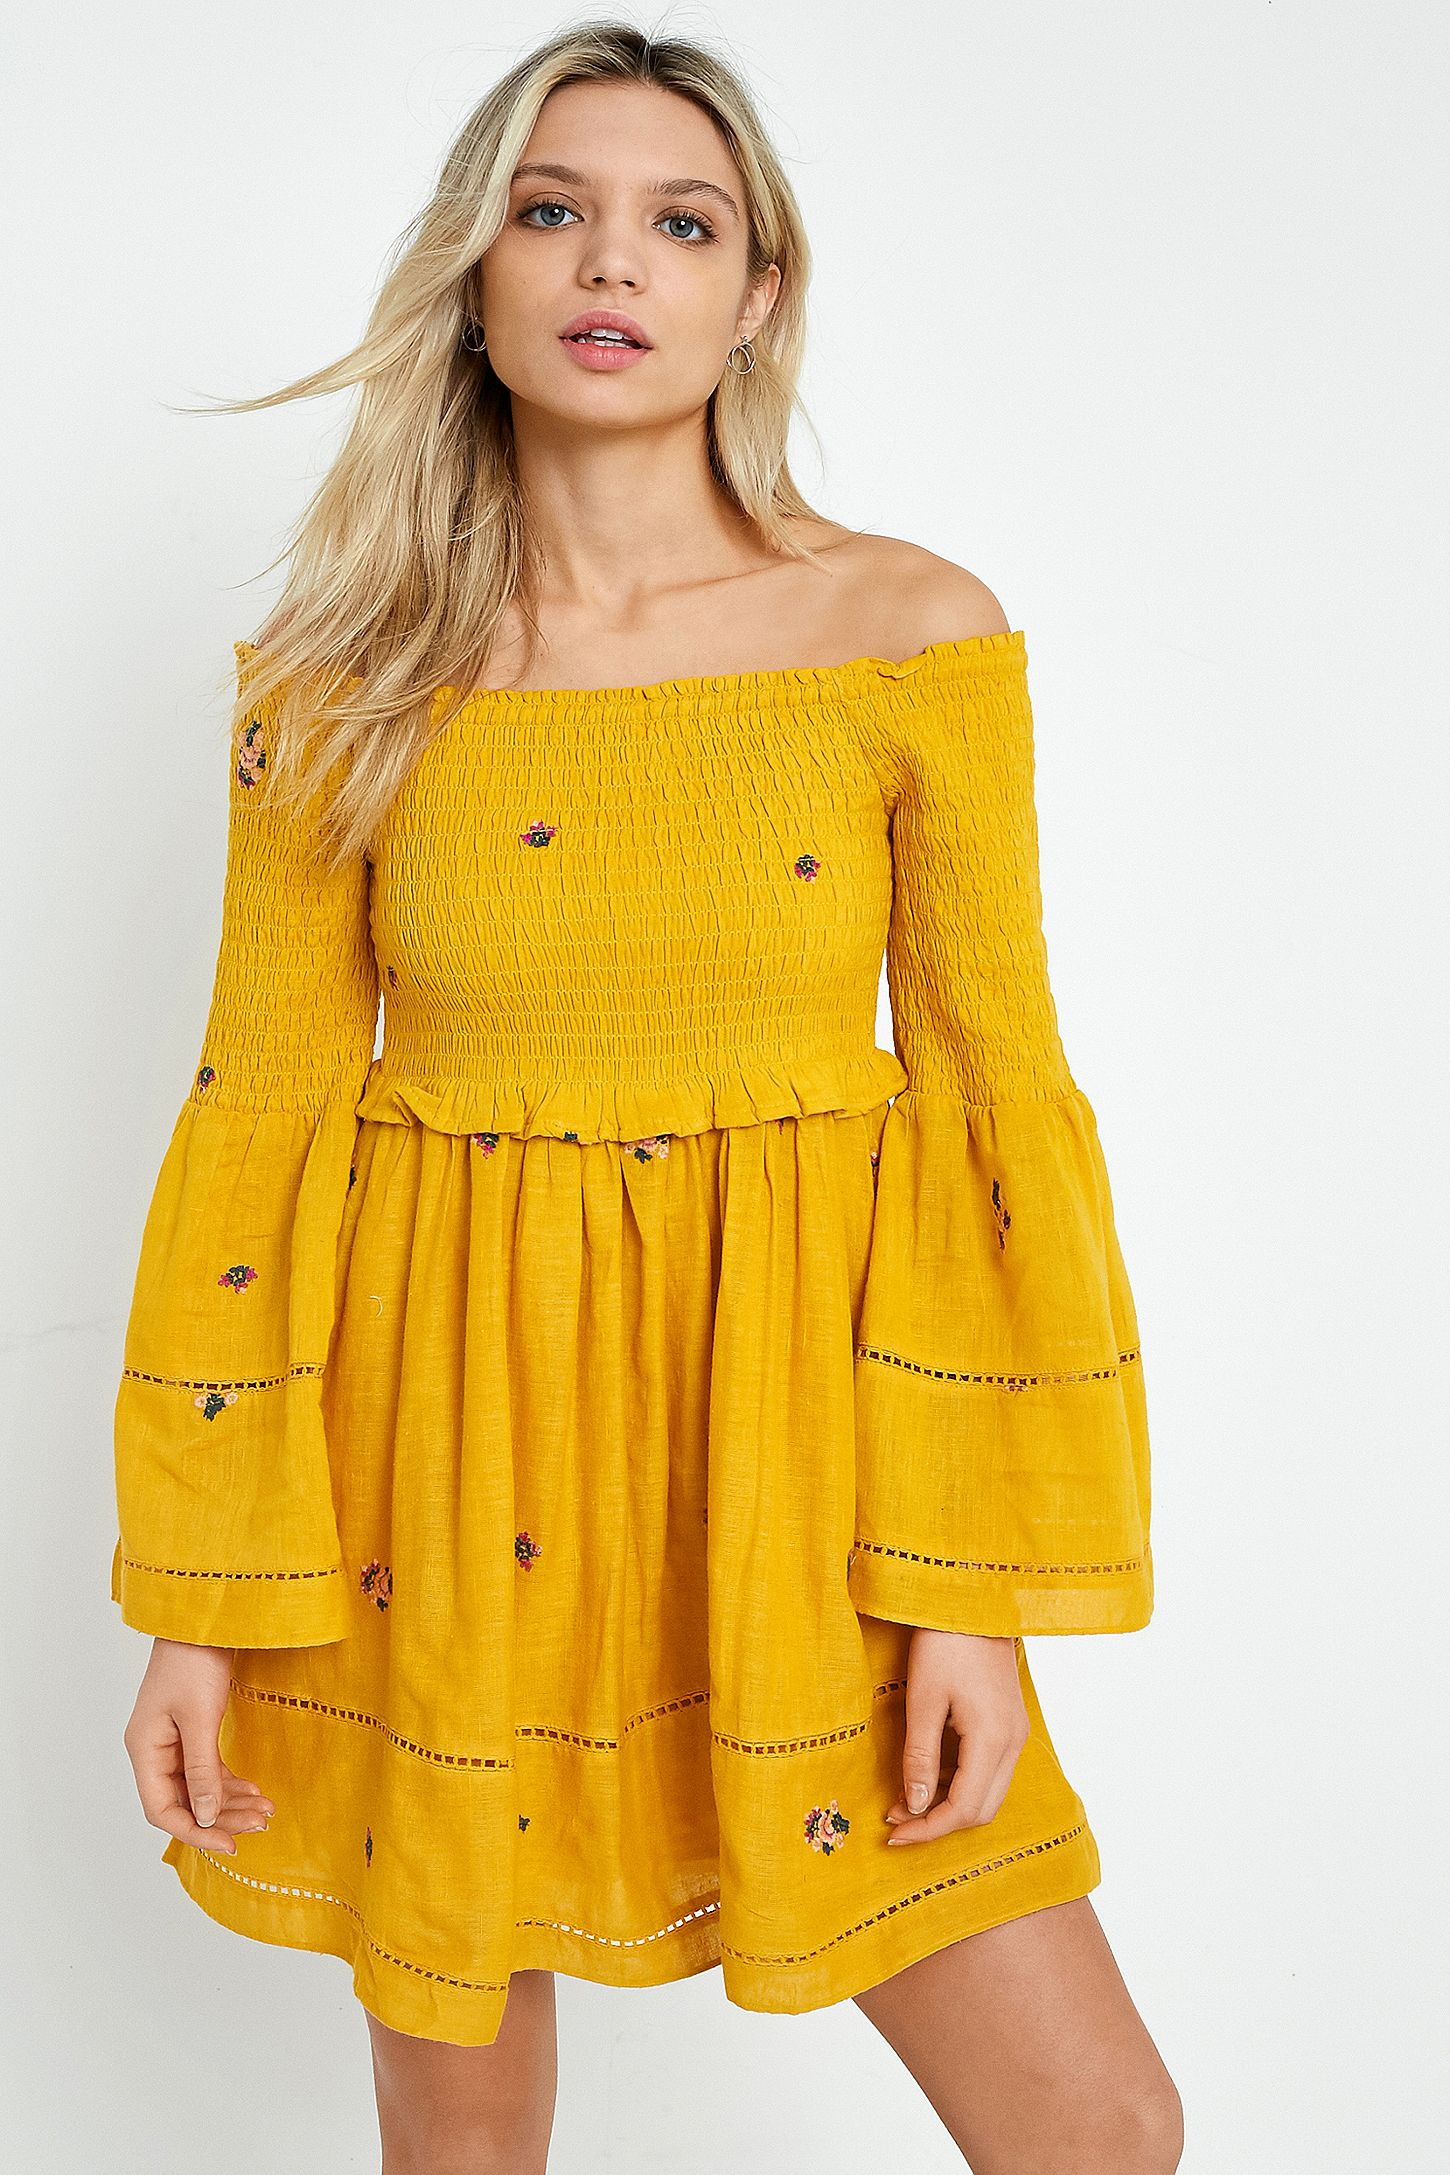 d86688d2012fc Free People Counting Daisies Yellow Embroidered Off-the-Shoulder Dress.  Click on image to zoom. Hover to zoom. Double Tap to Zoom